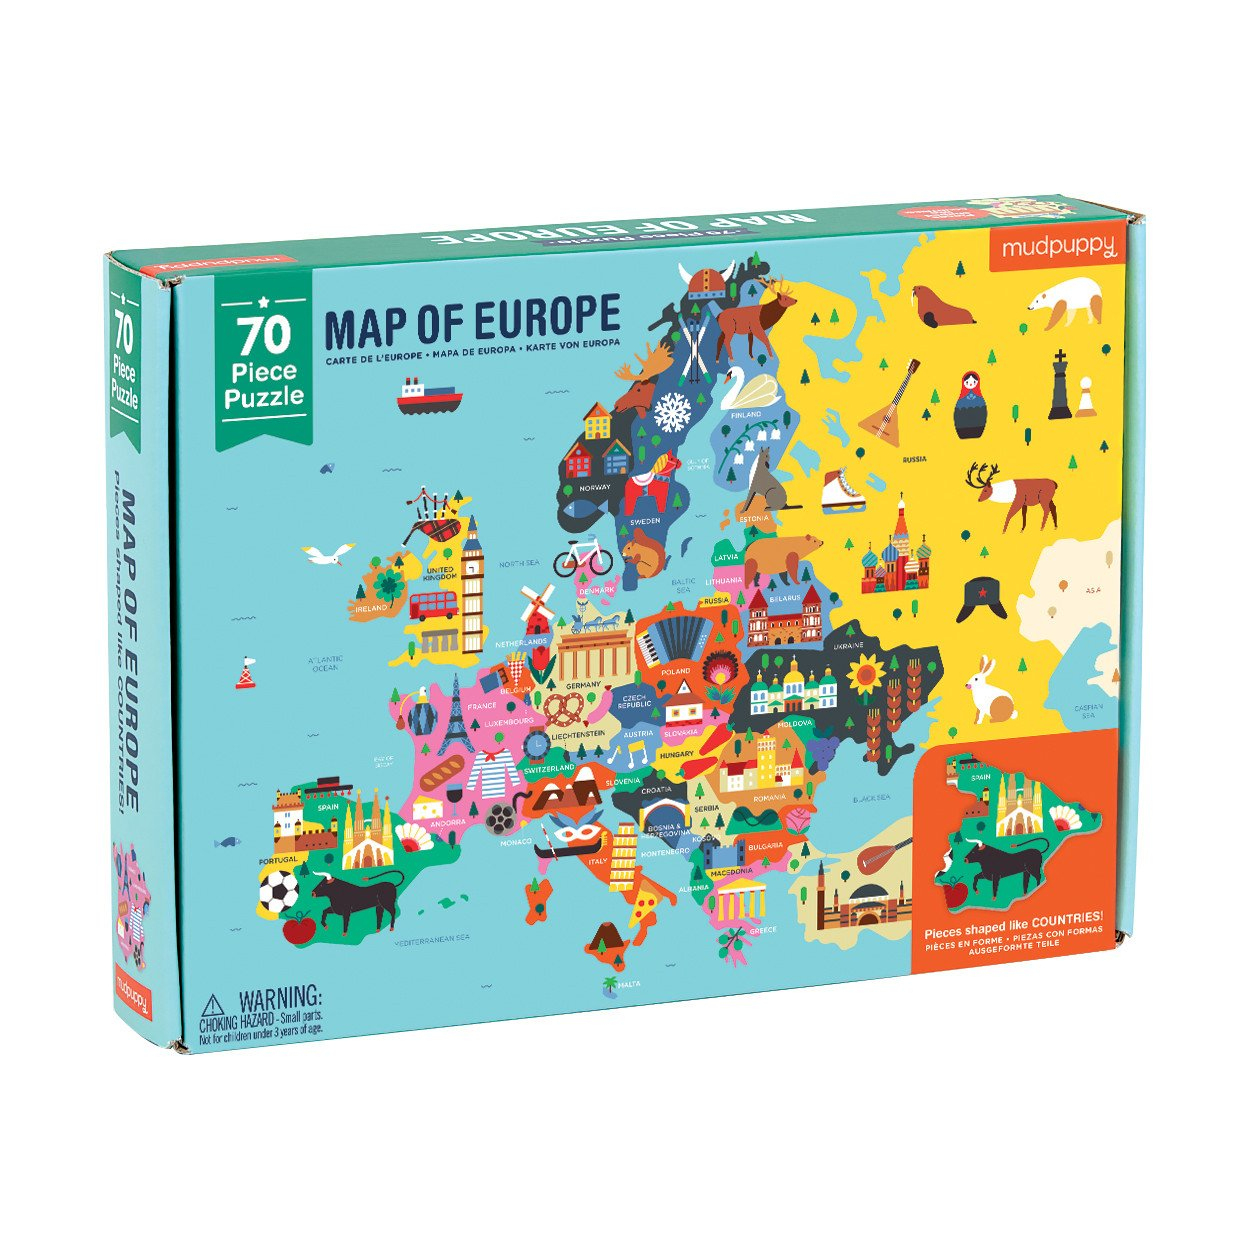 Map Of Europe 70 Piece Puzzle - Mudpuppy dedans Carte De L Europe 2017